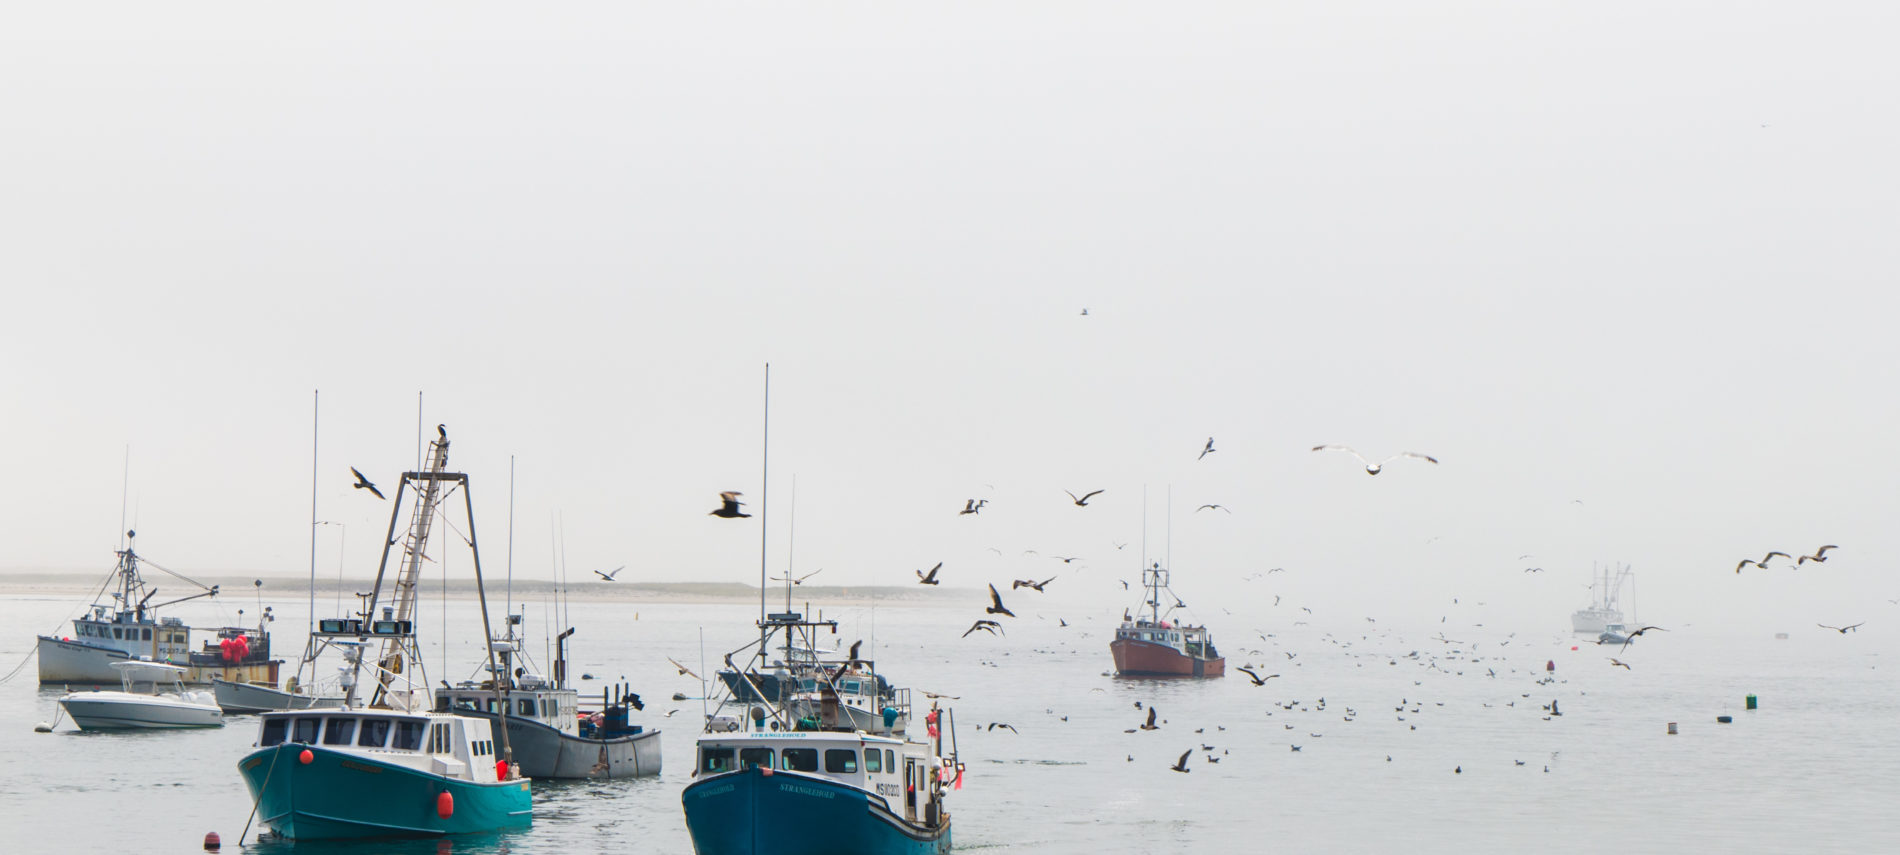 Fishing boats coming into the harbor in the fog with seagulls flying around